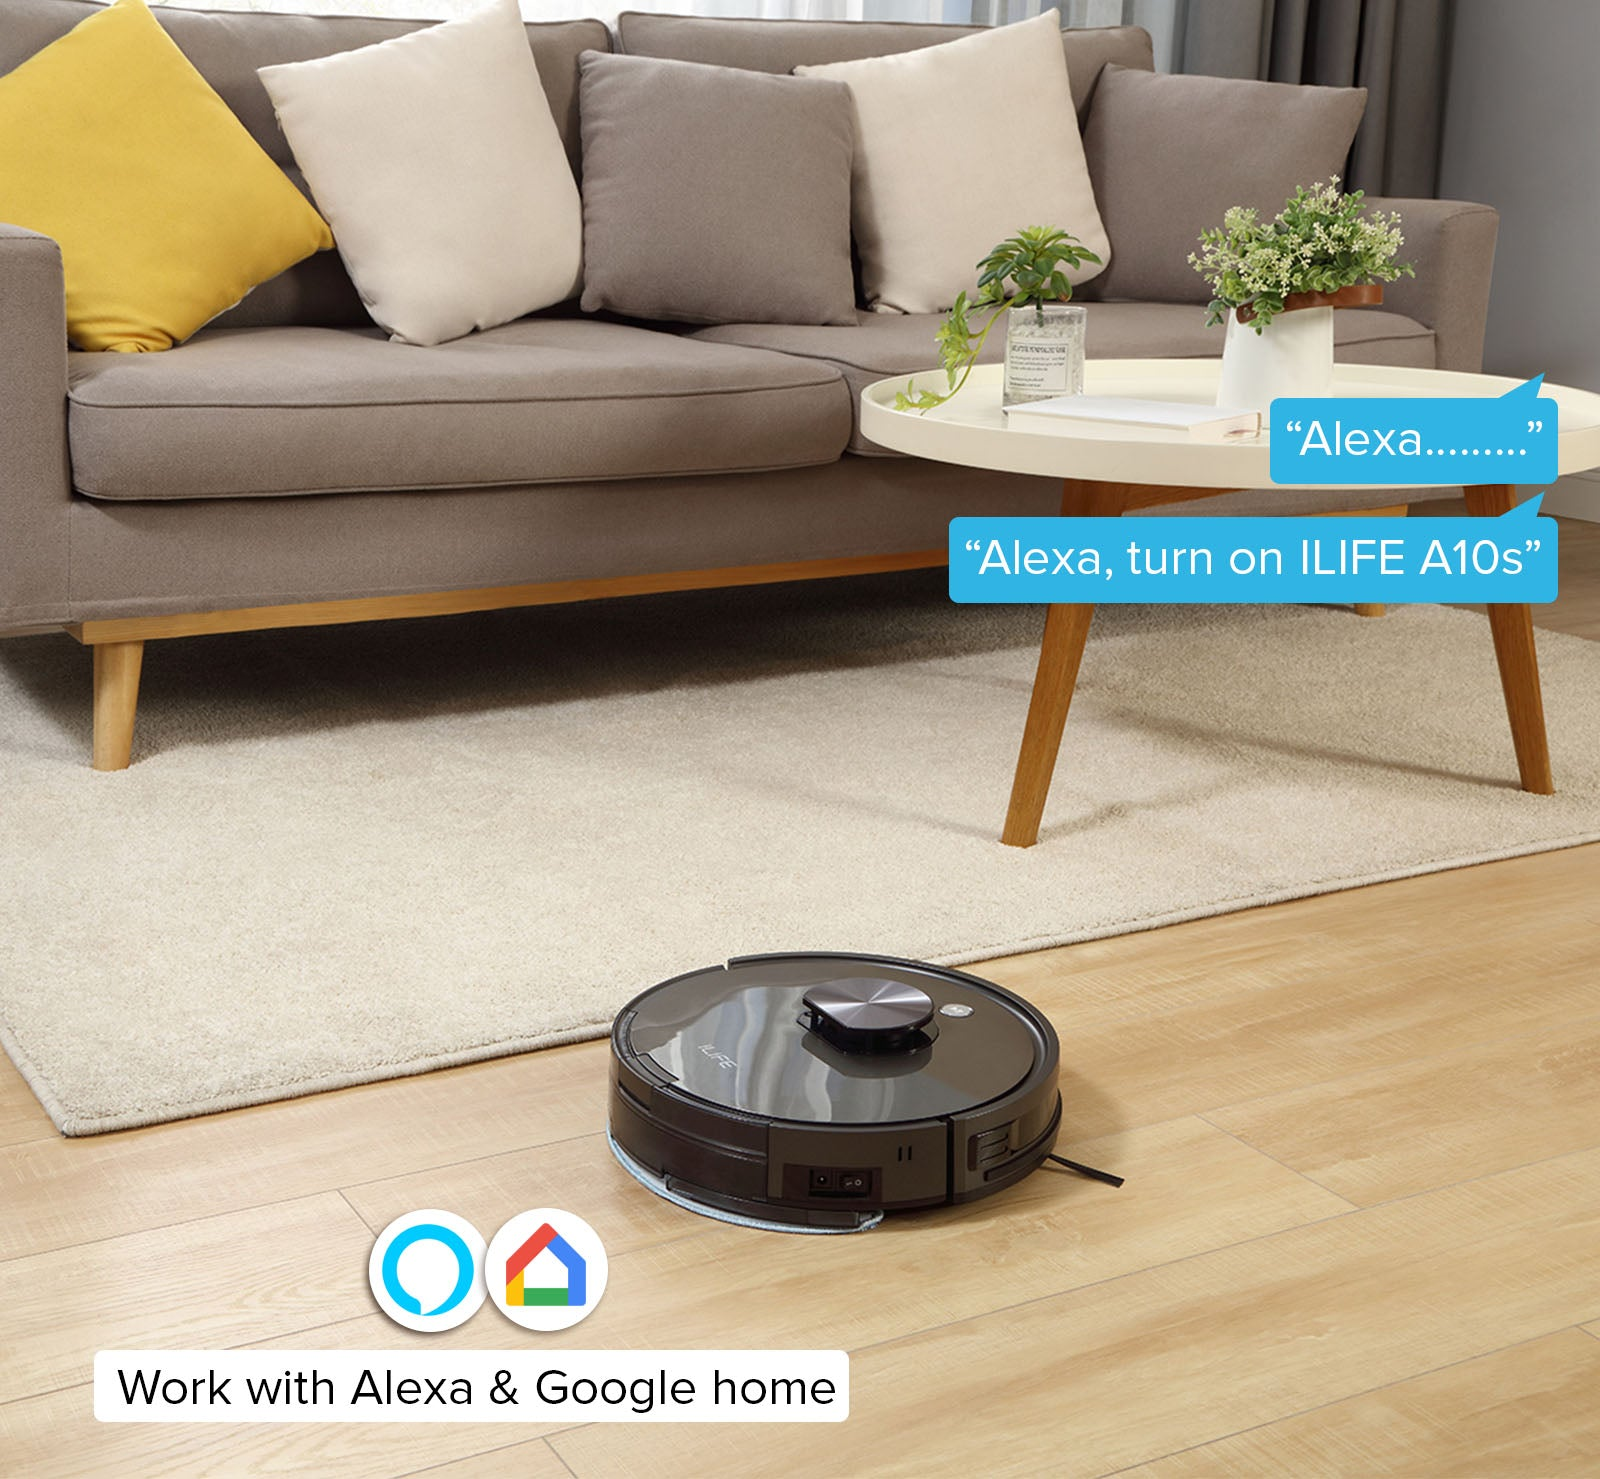 work with alexa and google home